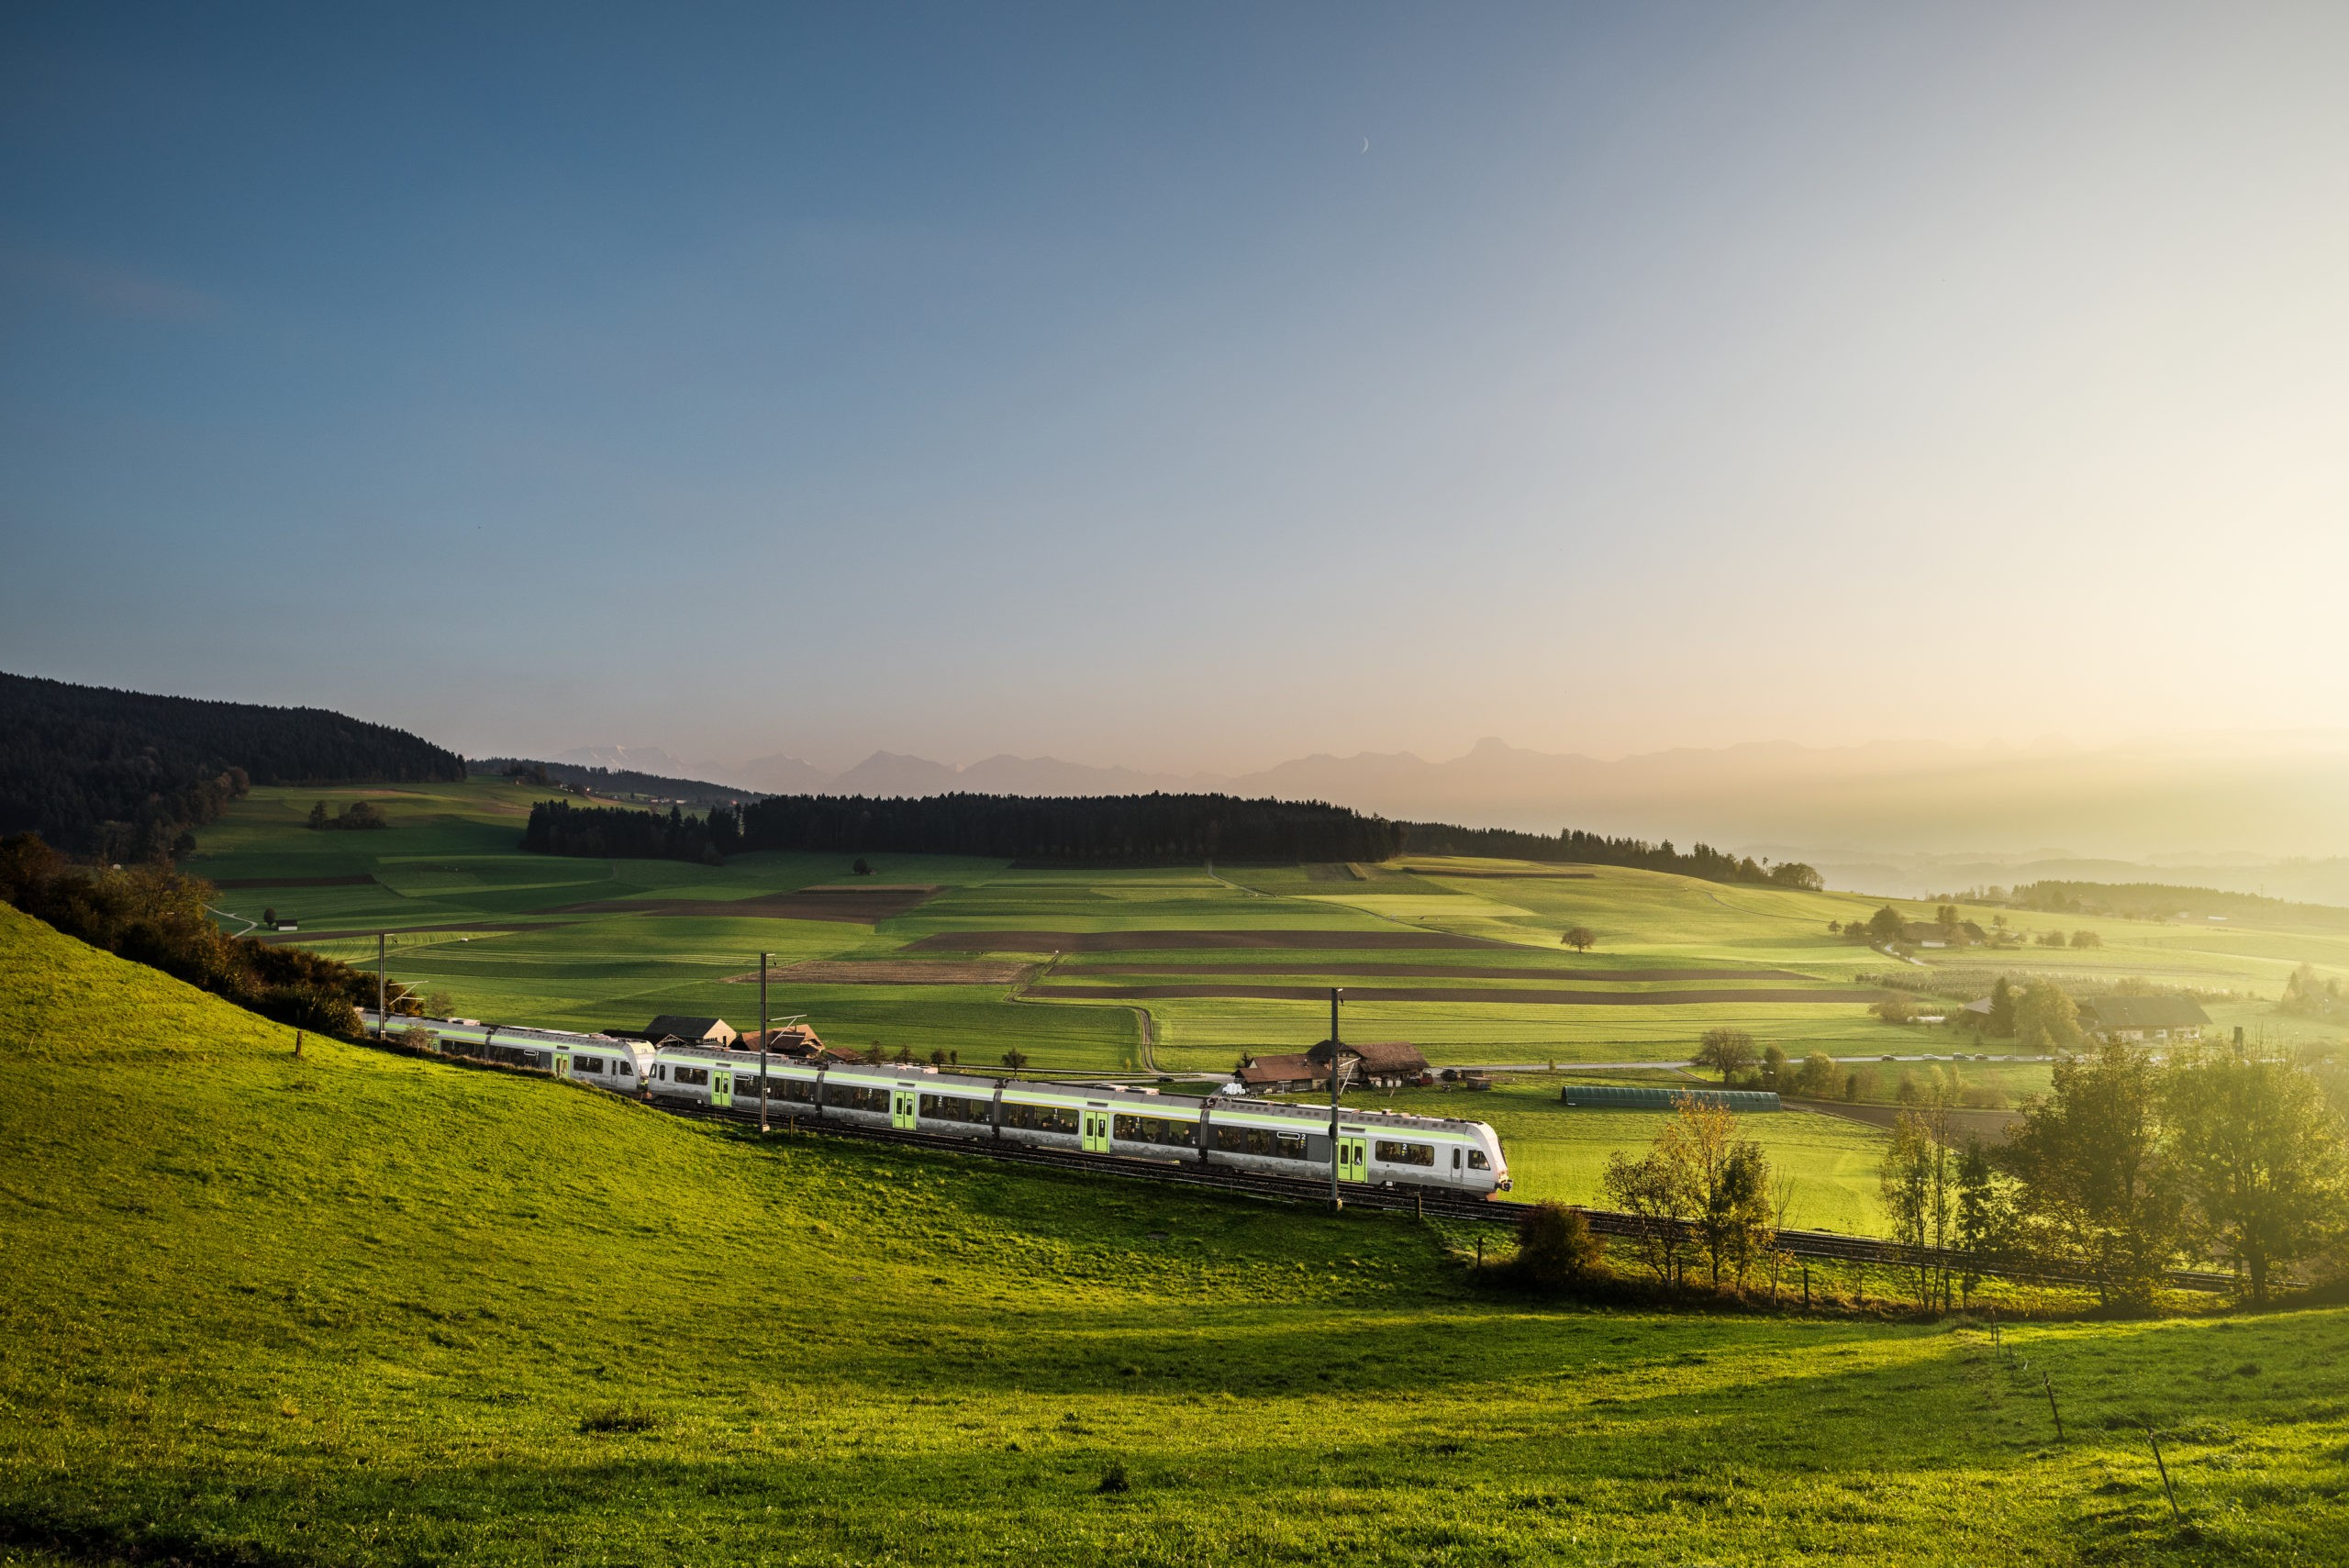 BLS passenger train between Bern and Lucerne